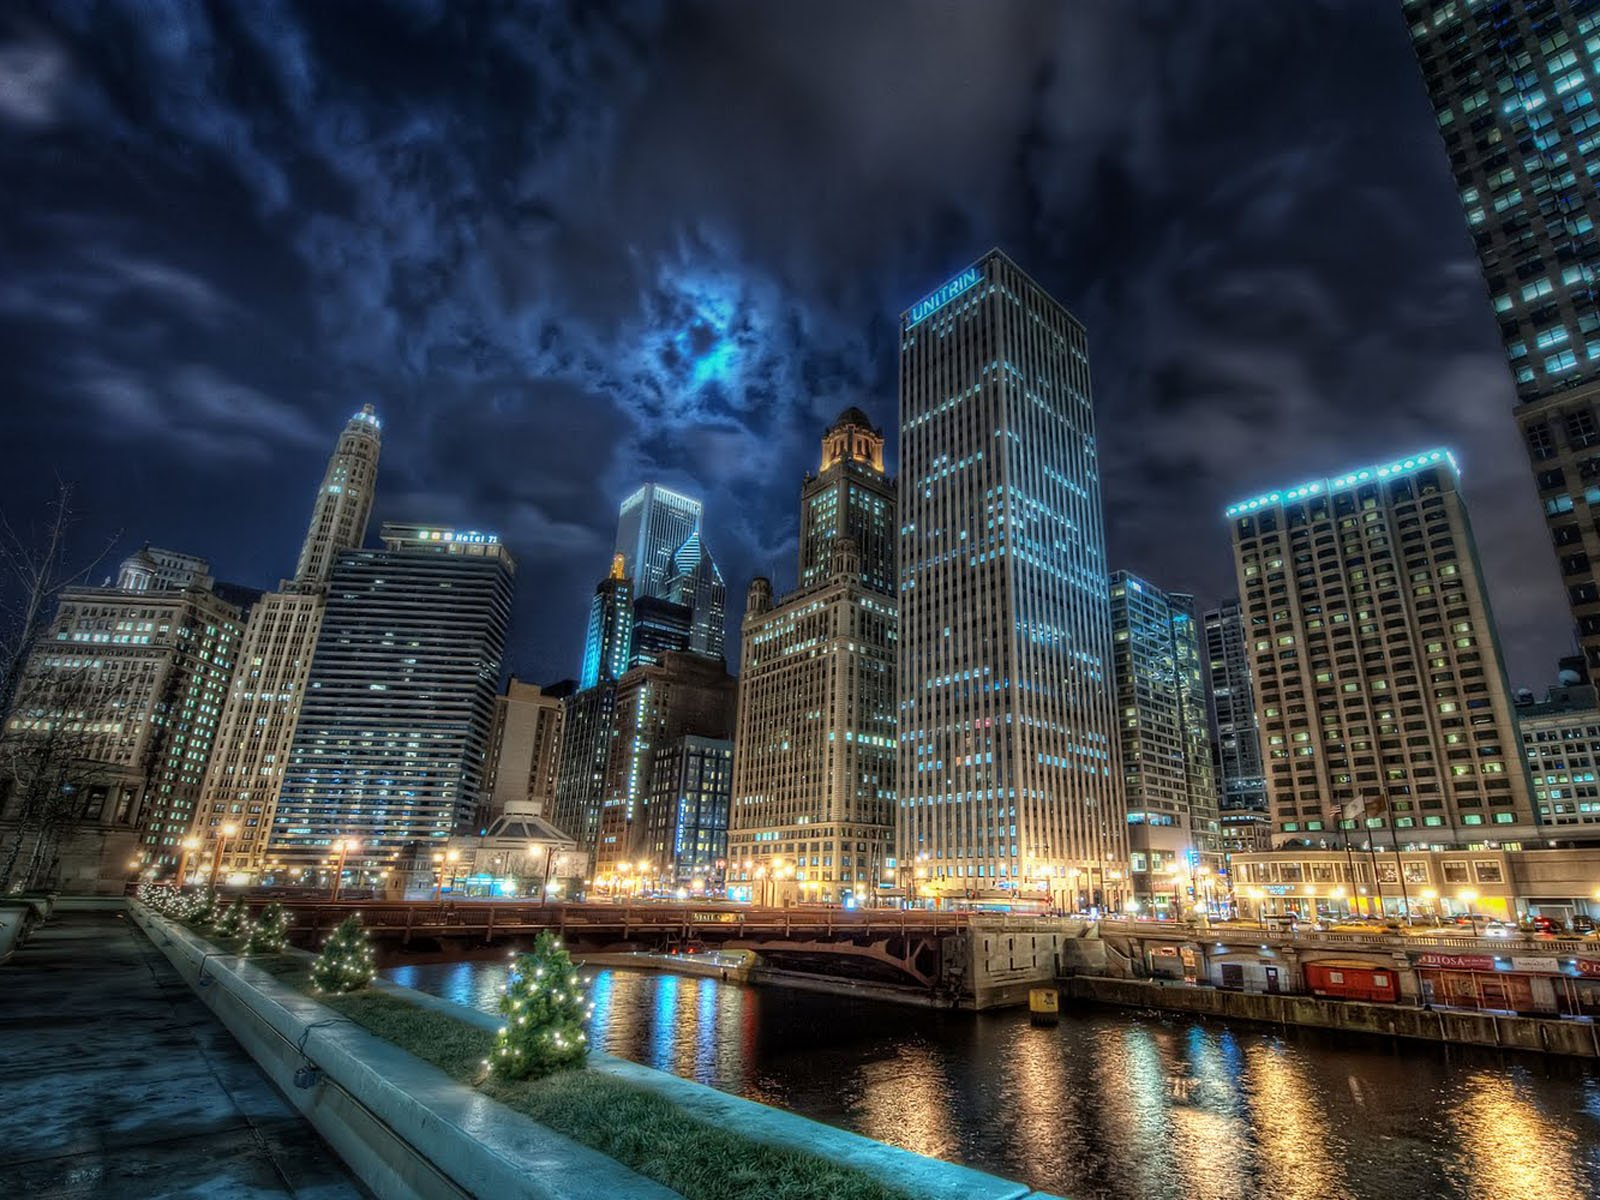 wallpapers Beautiful Chicago City Wallpapers 1600x1200